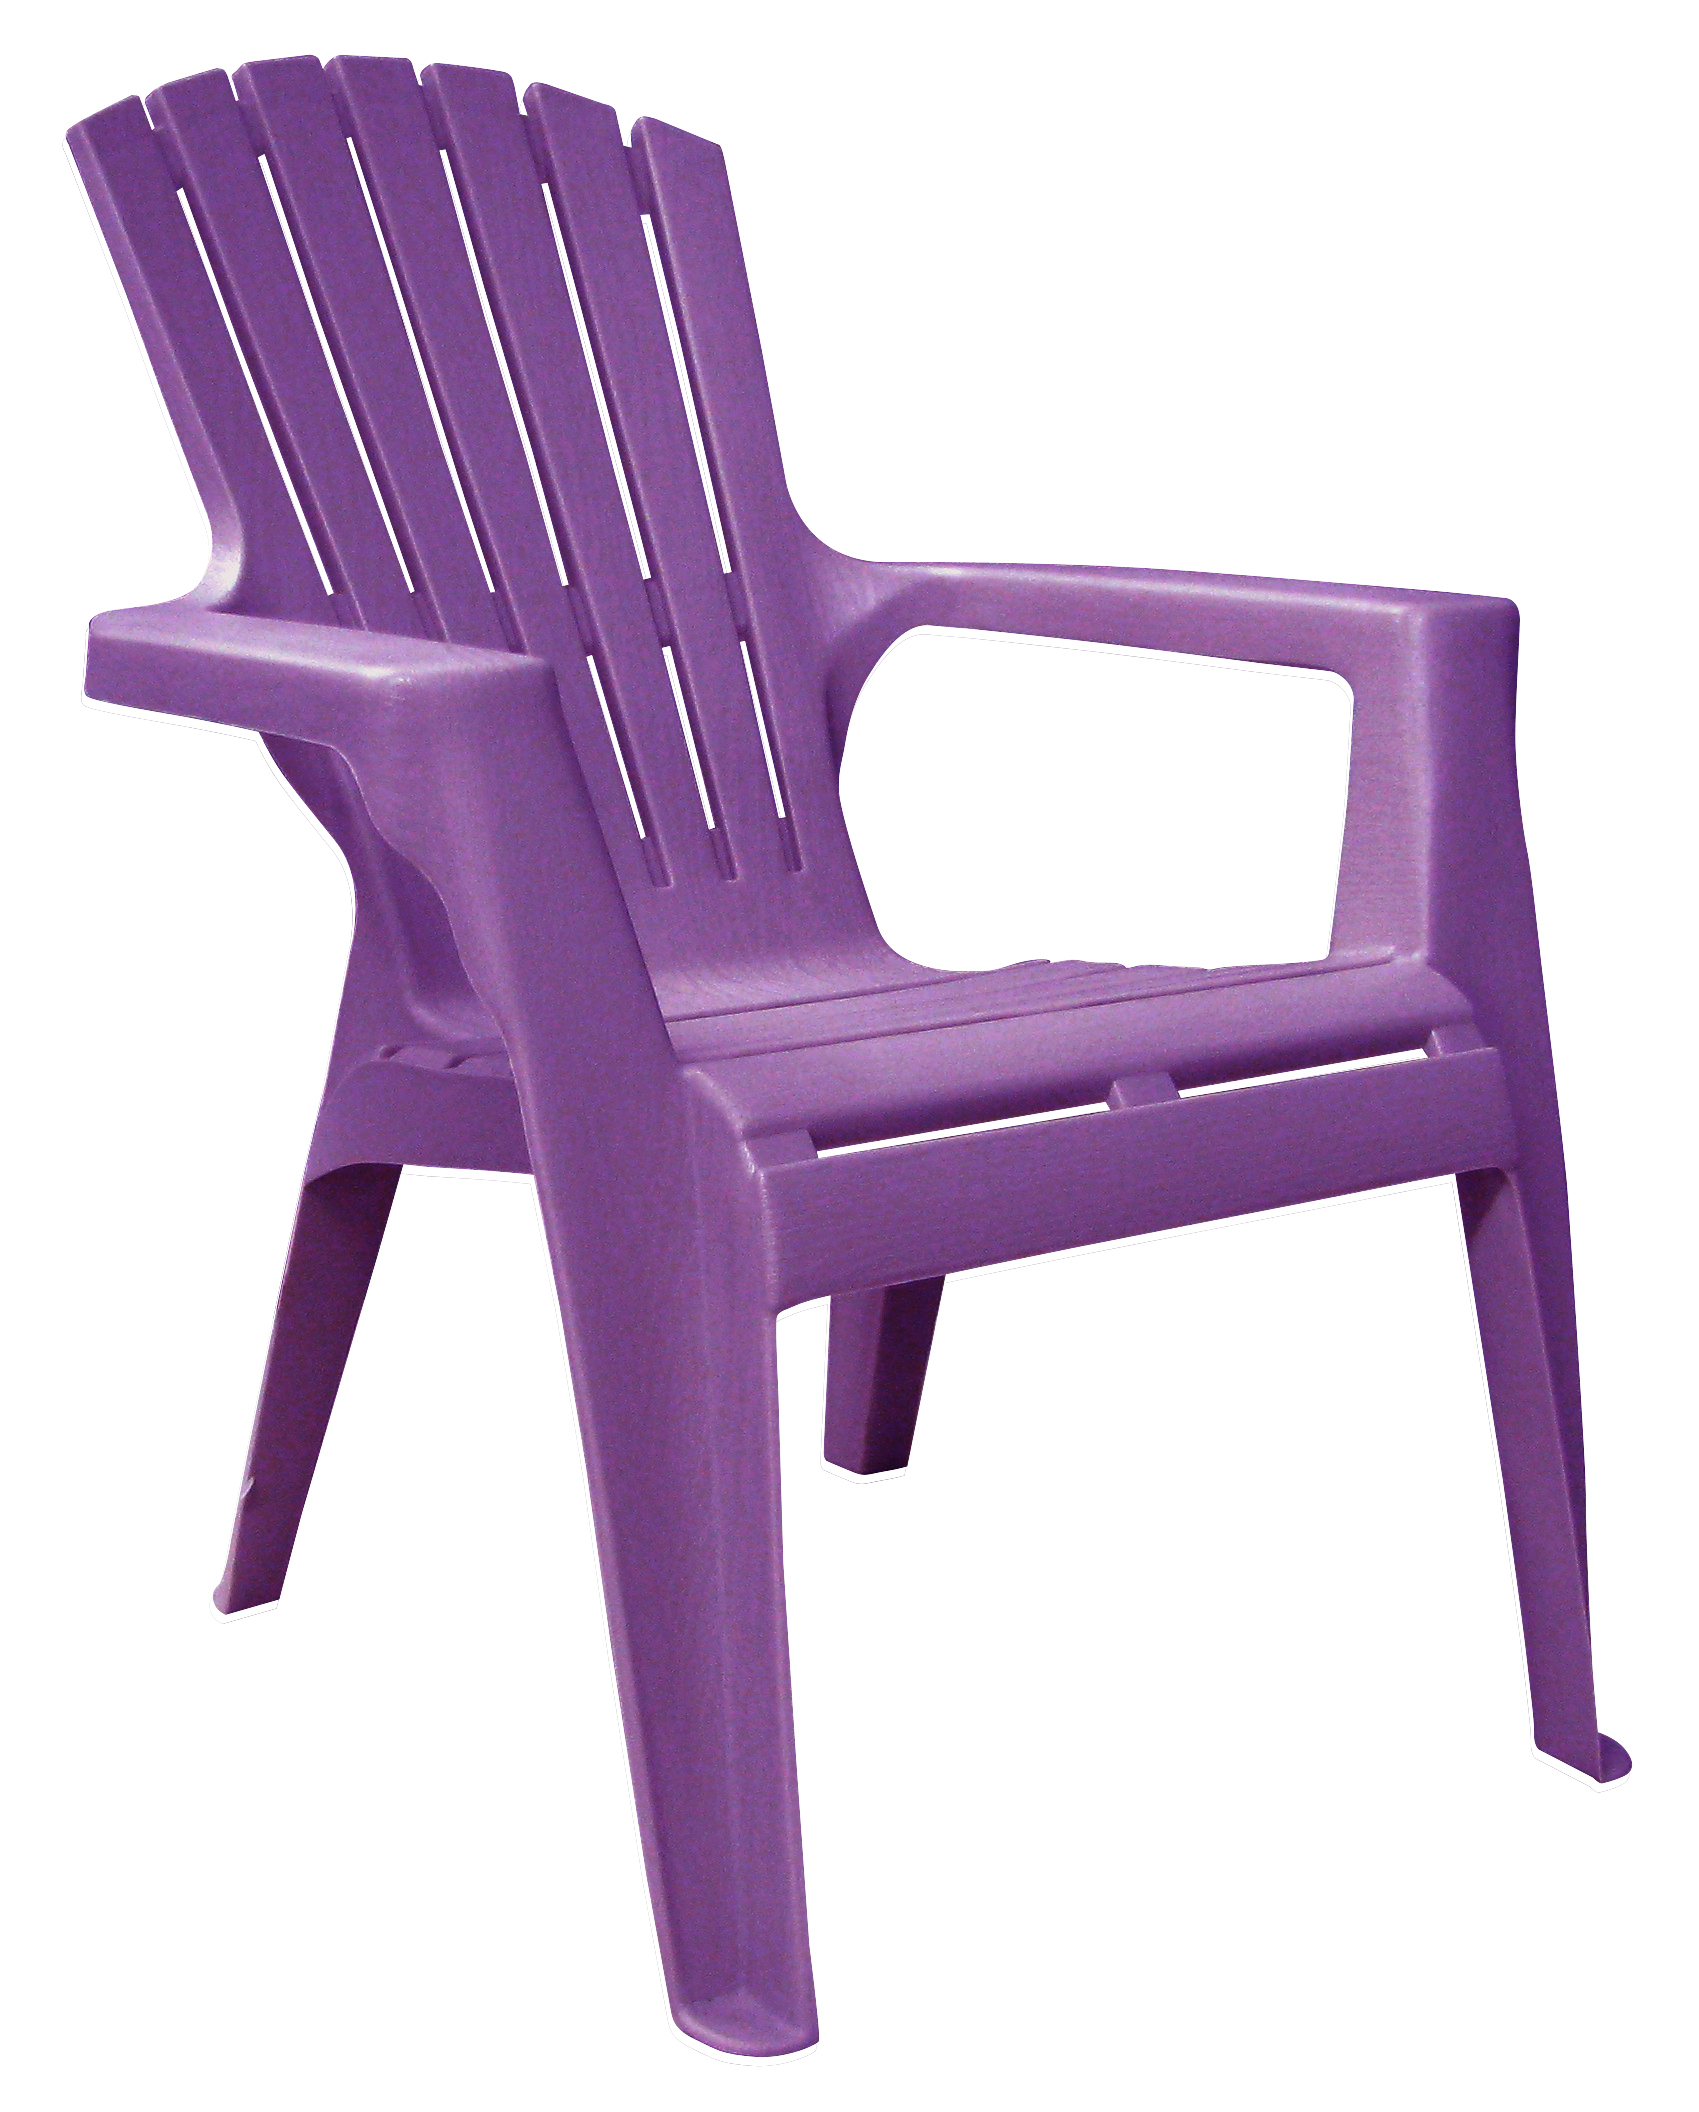 Adams Manufacturing Kids' Adirondack Chair Bright Violet by Adams Manufacturing